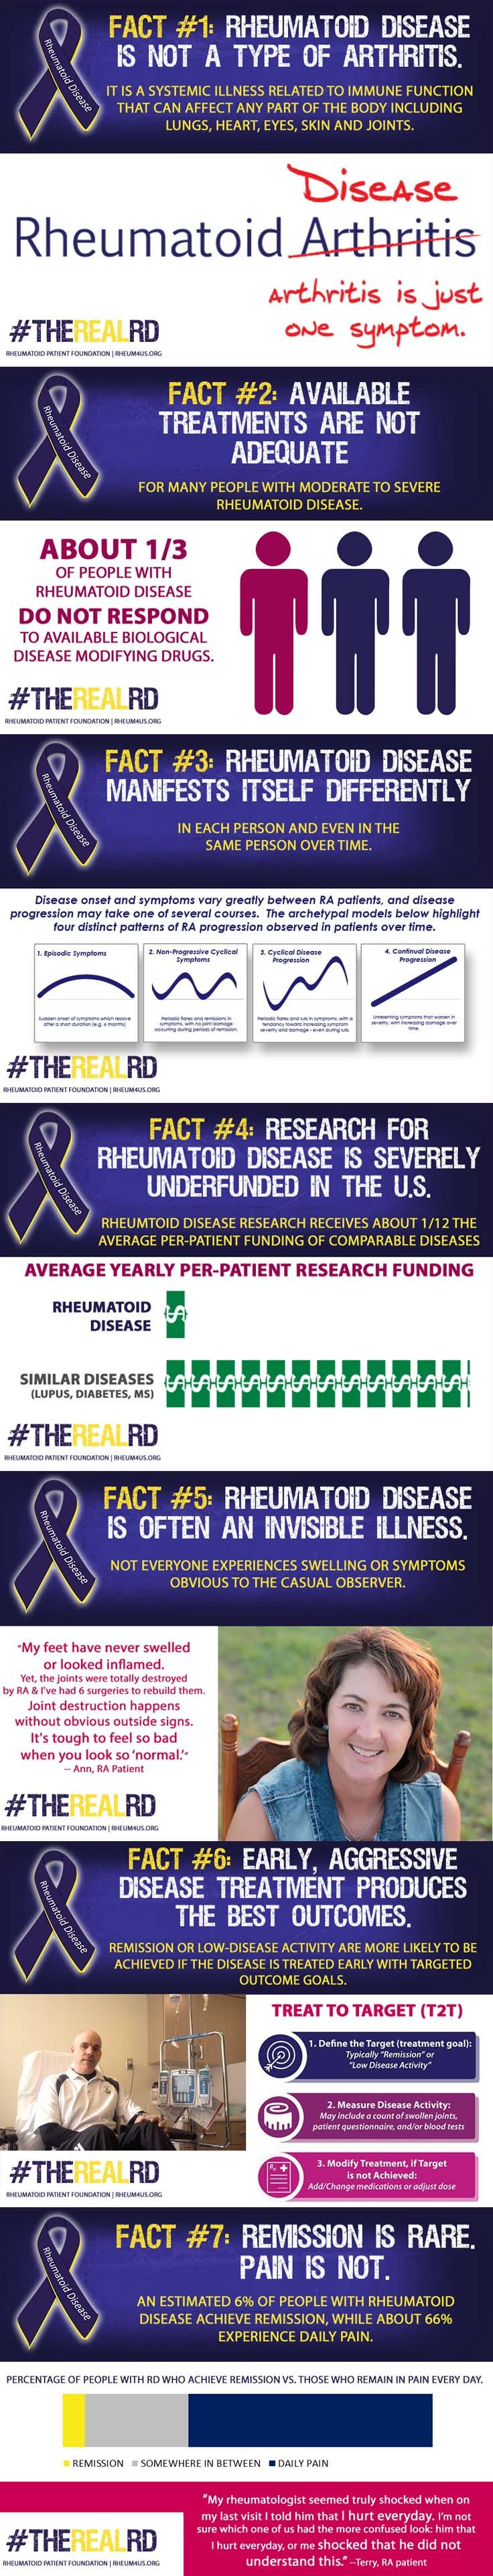 "7 Facts clearly show the real rheumatoid disease is not like the false notion it's just ""a type of arthritis"""